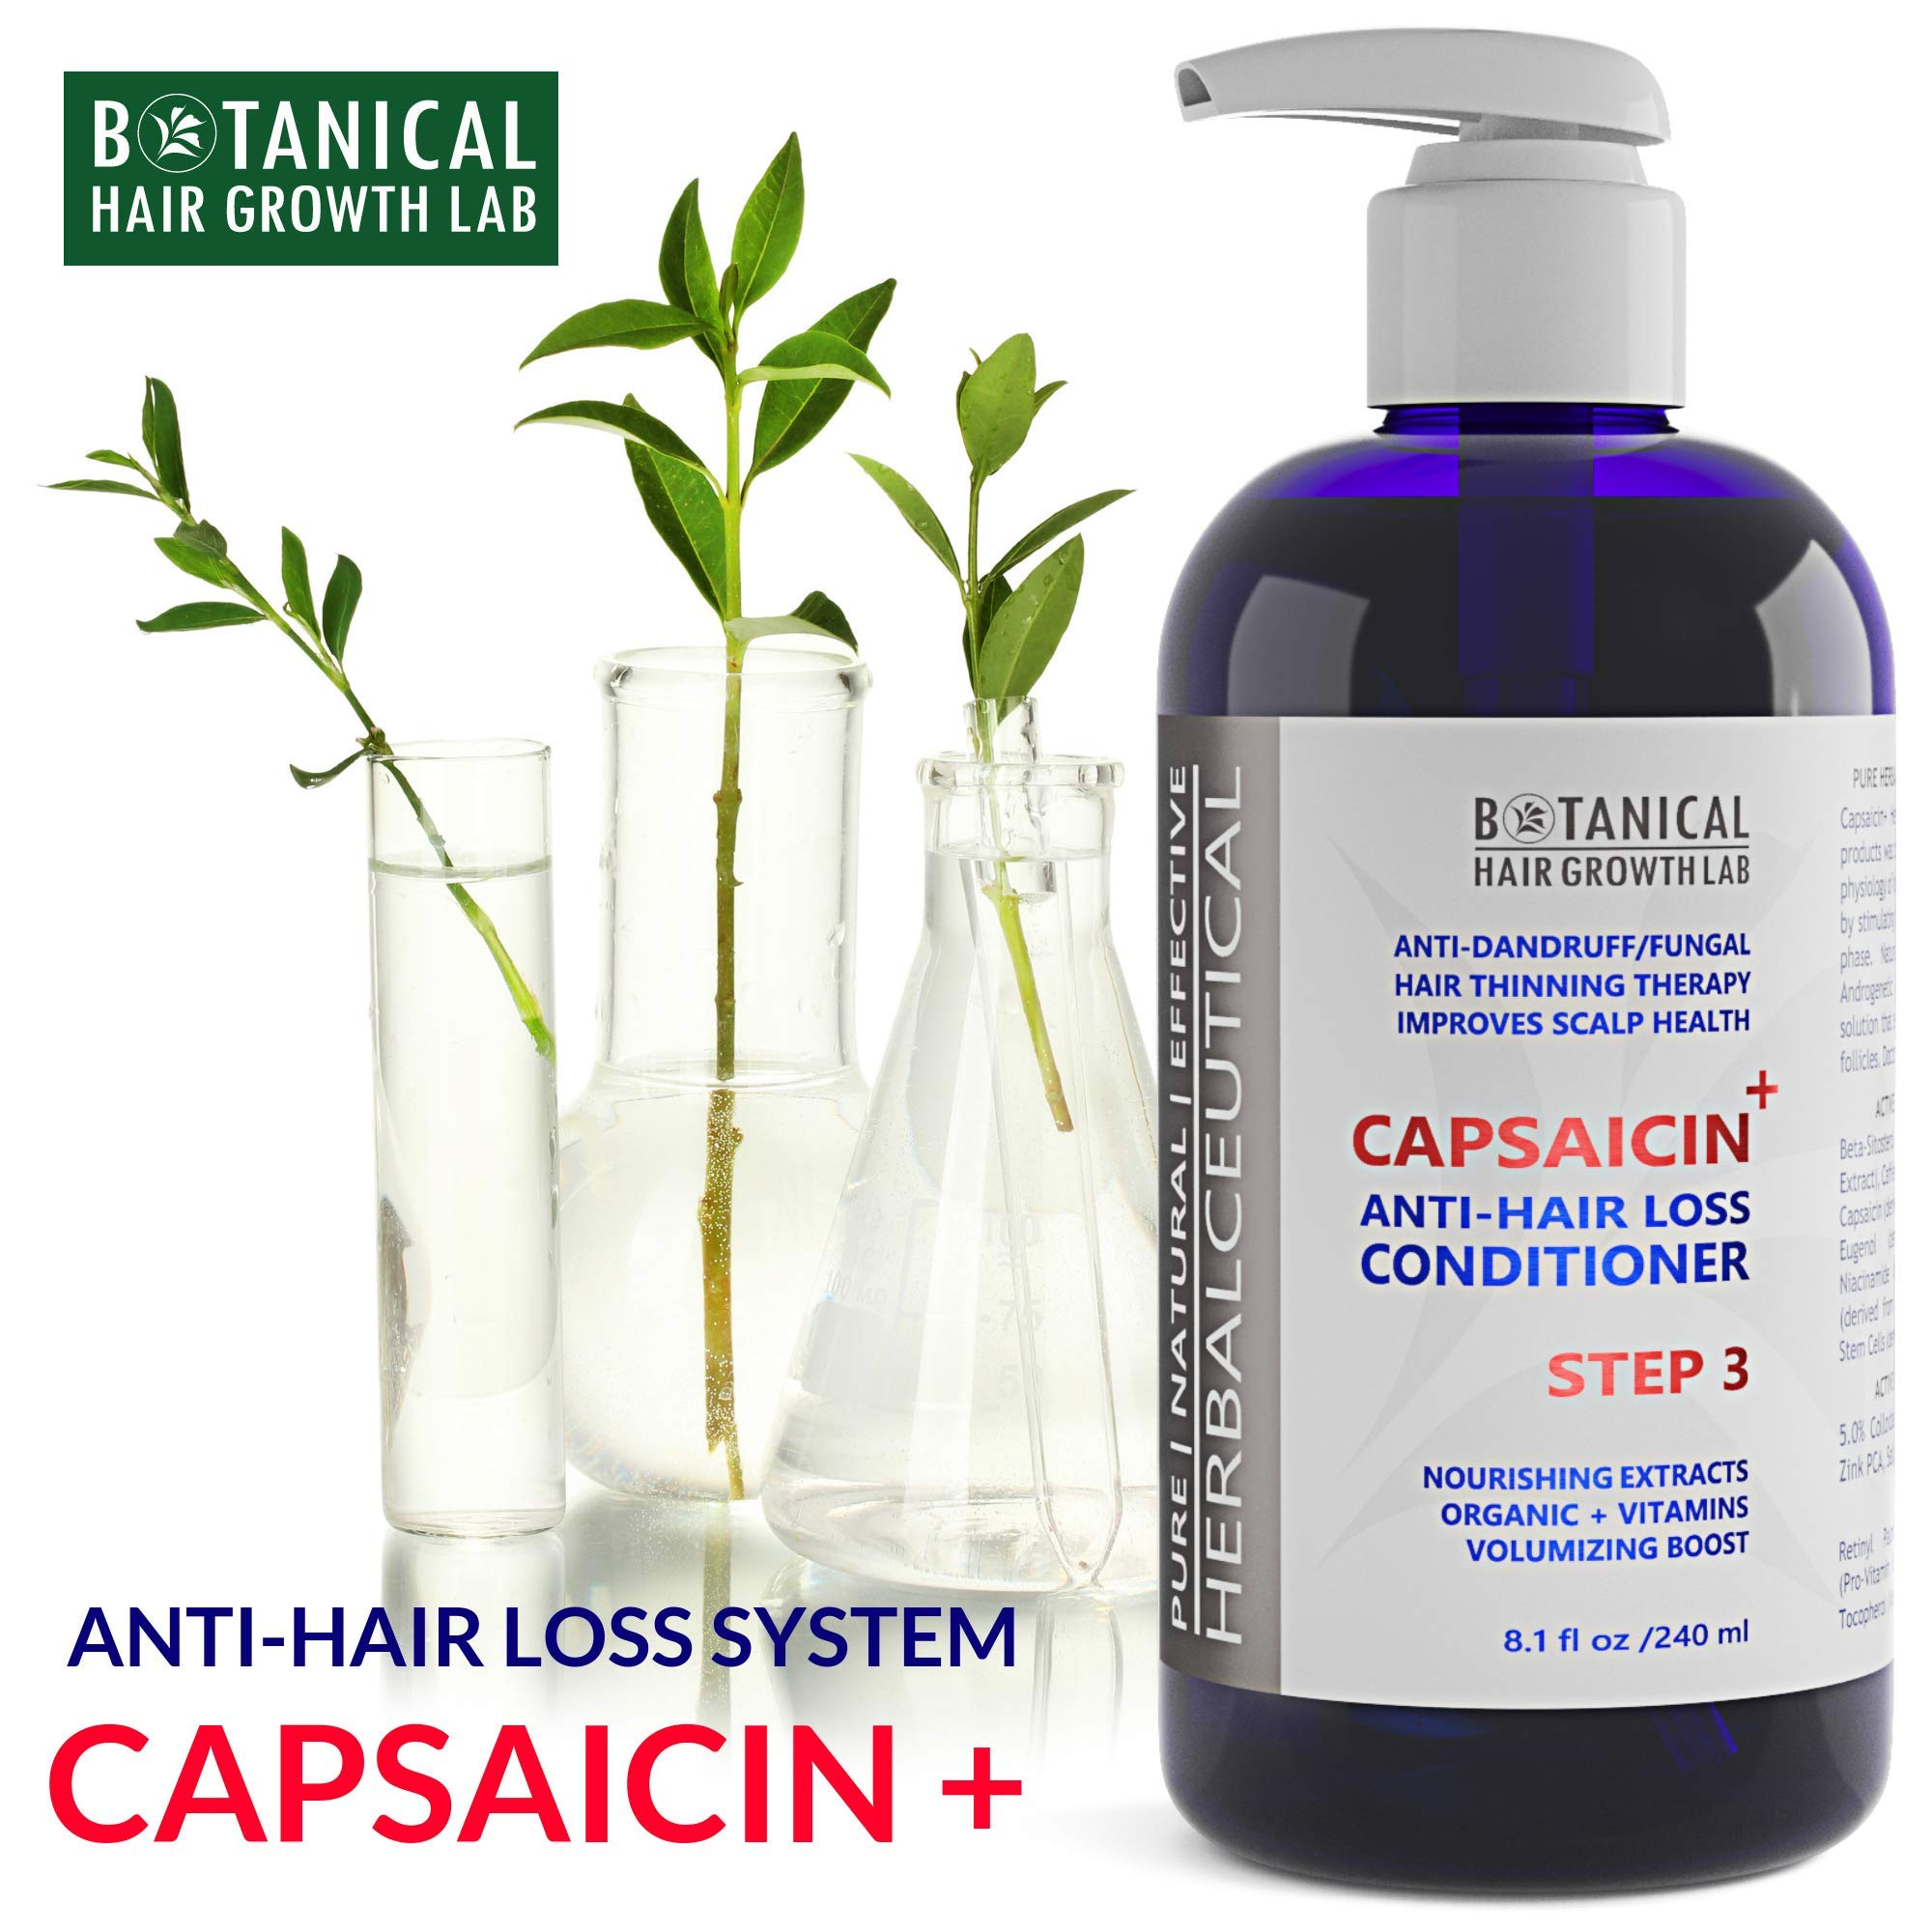 Hair Loss Serum DHT Blocker Shampoo and Conditioner for Hair Growth CAPSAICIN+ Oil-Free Formula - Caffeine, Niacin, Vitamins, Hyaluronic, Botanical Extracts - Hair Loss Prevention for Men and Women